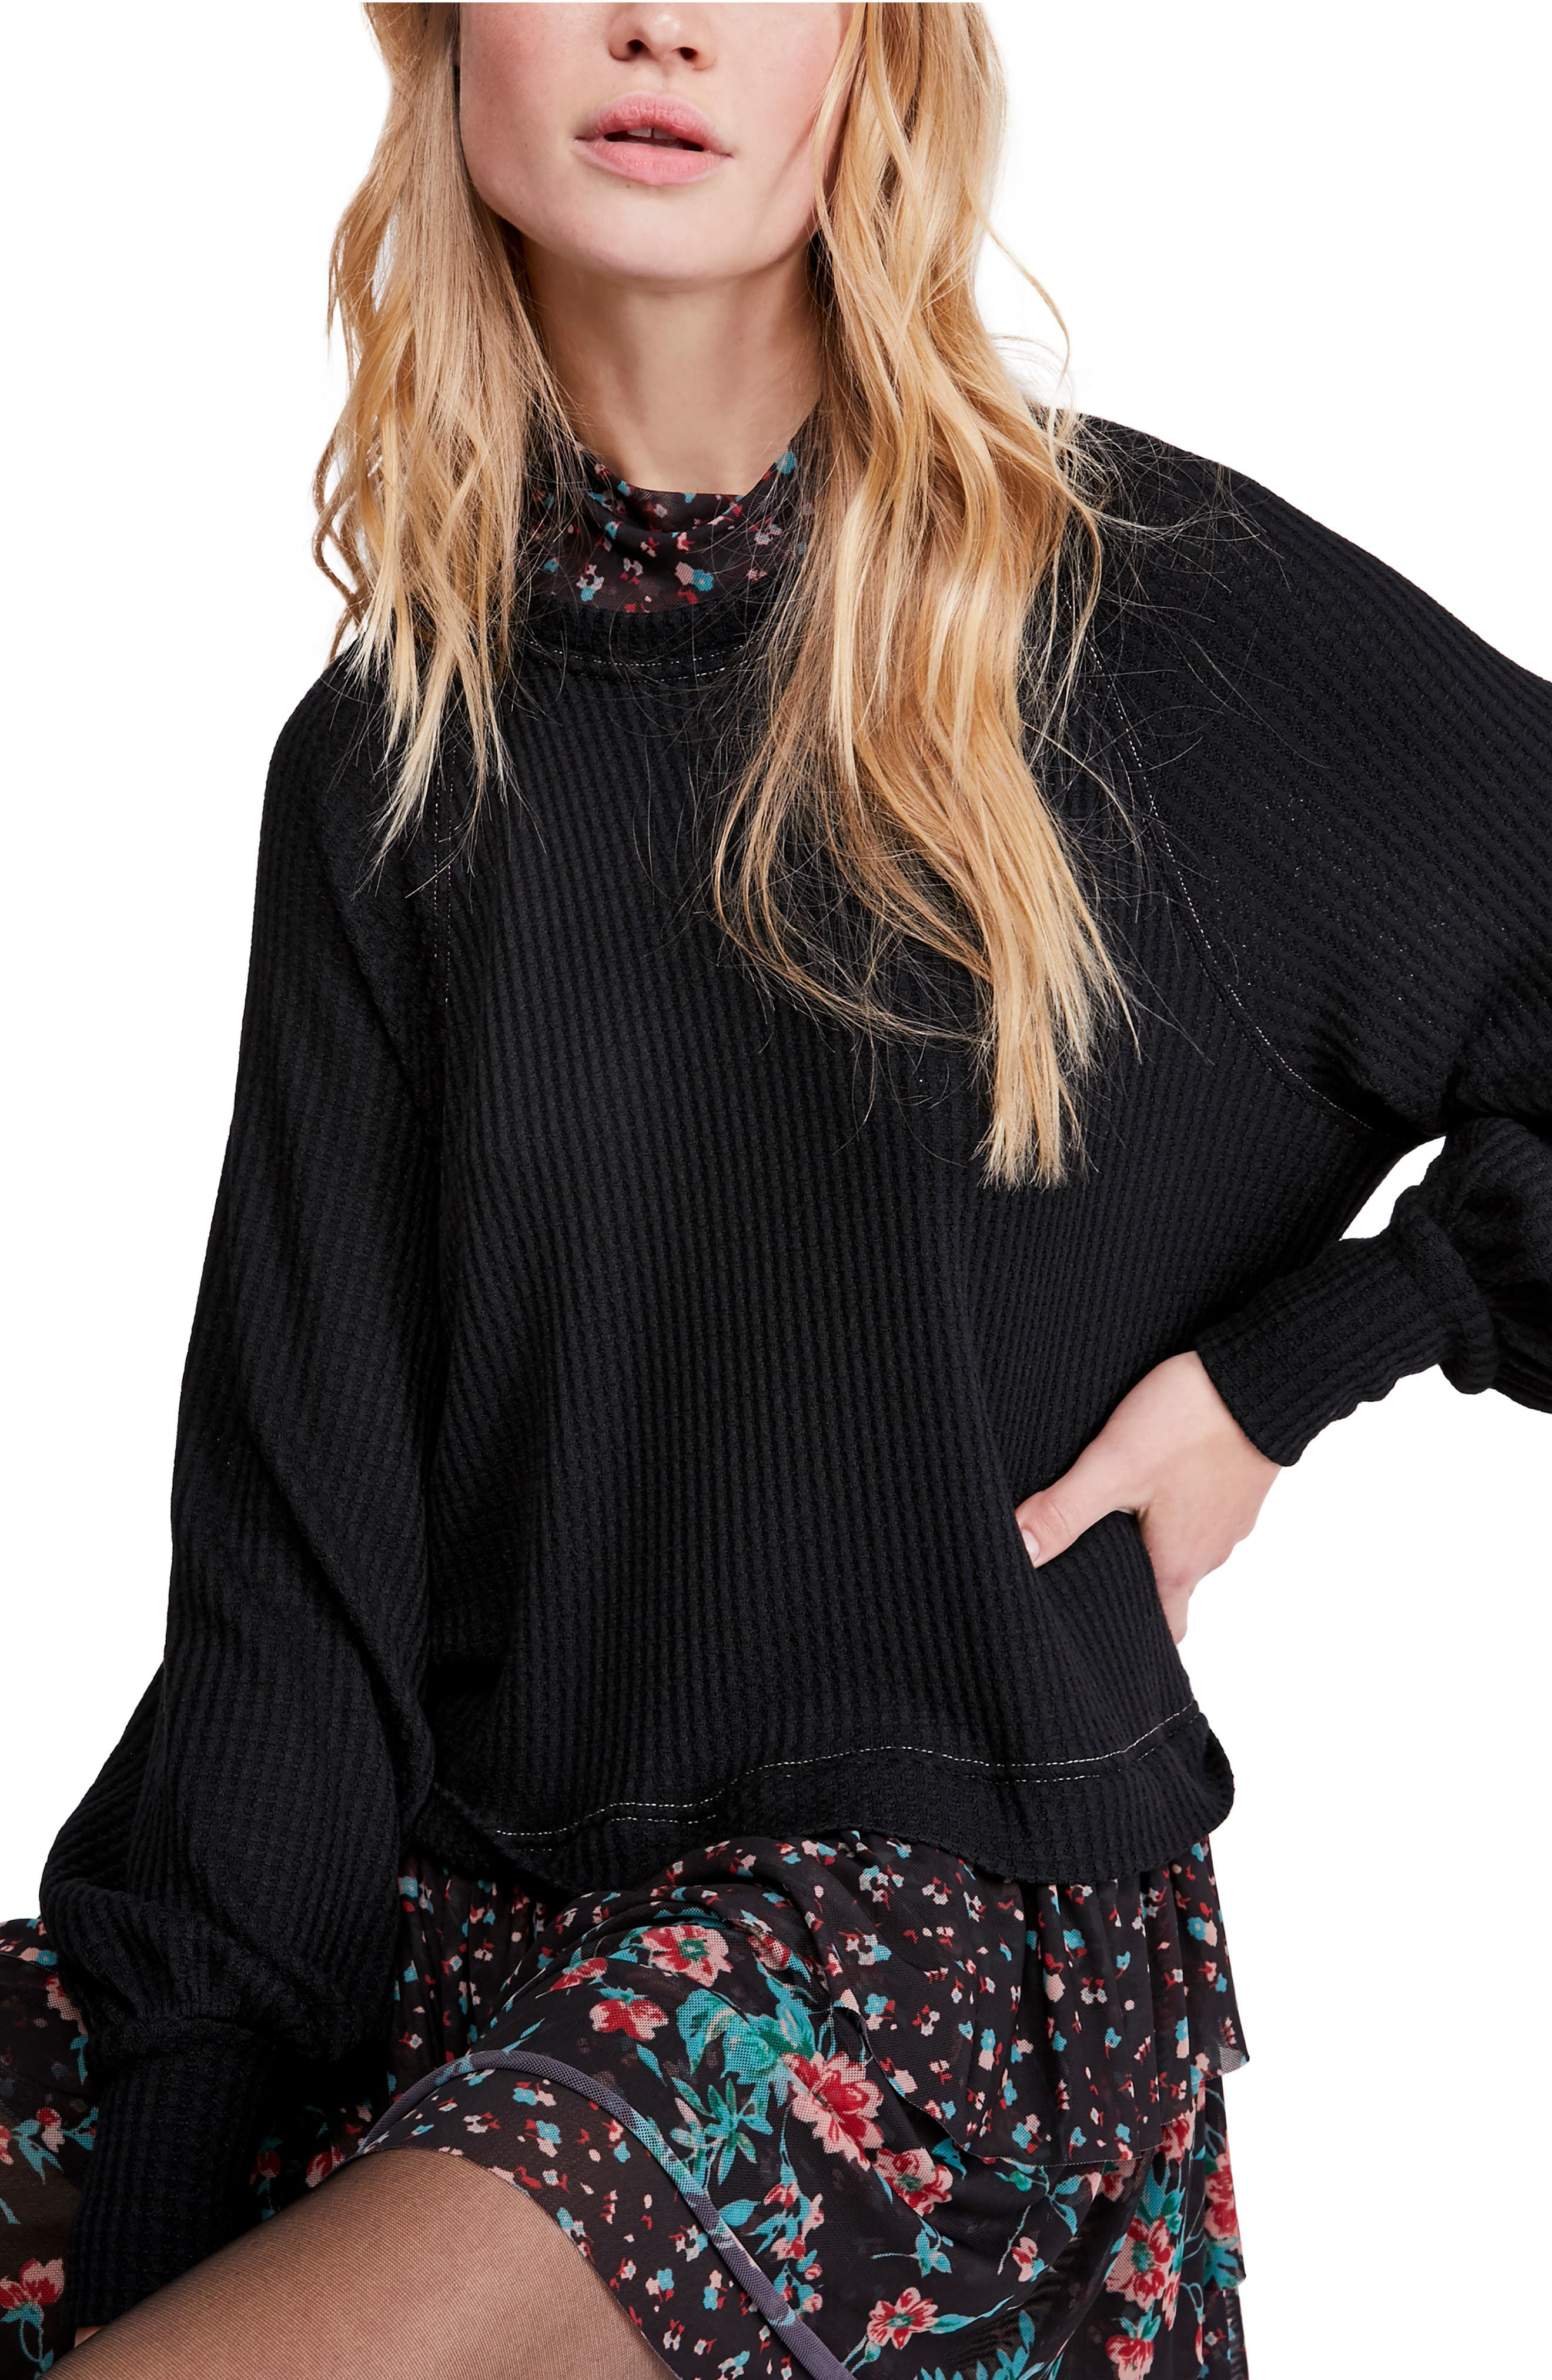 Free People Dresses Opposite Attraction Long Sleeve Dress